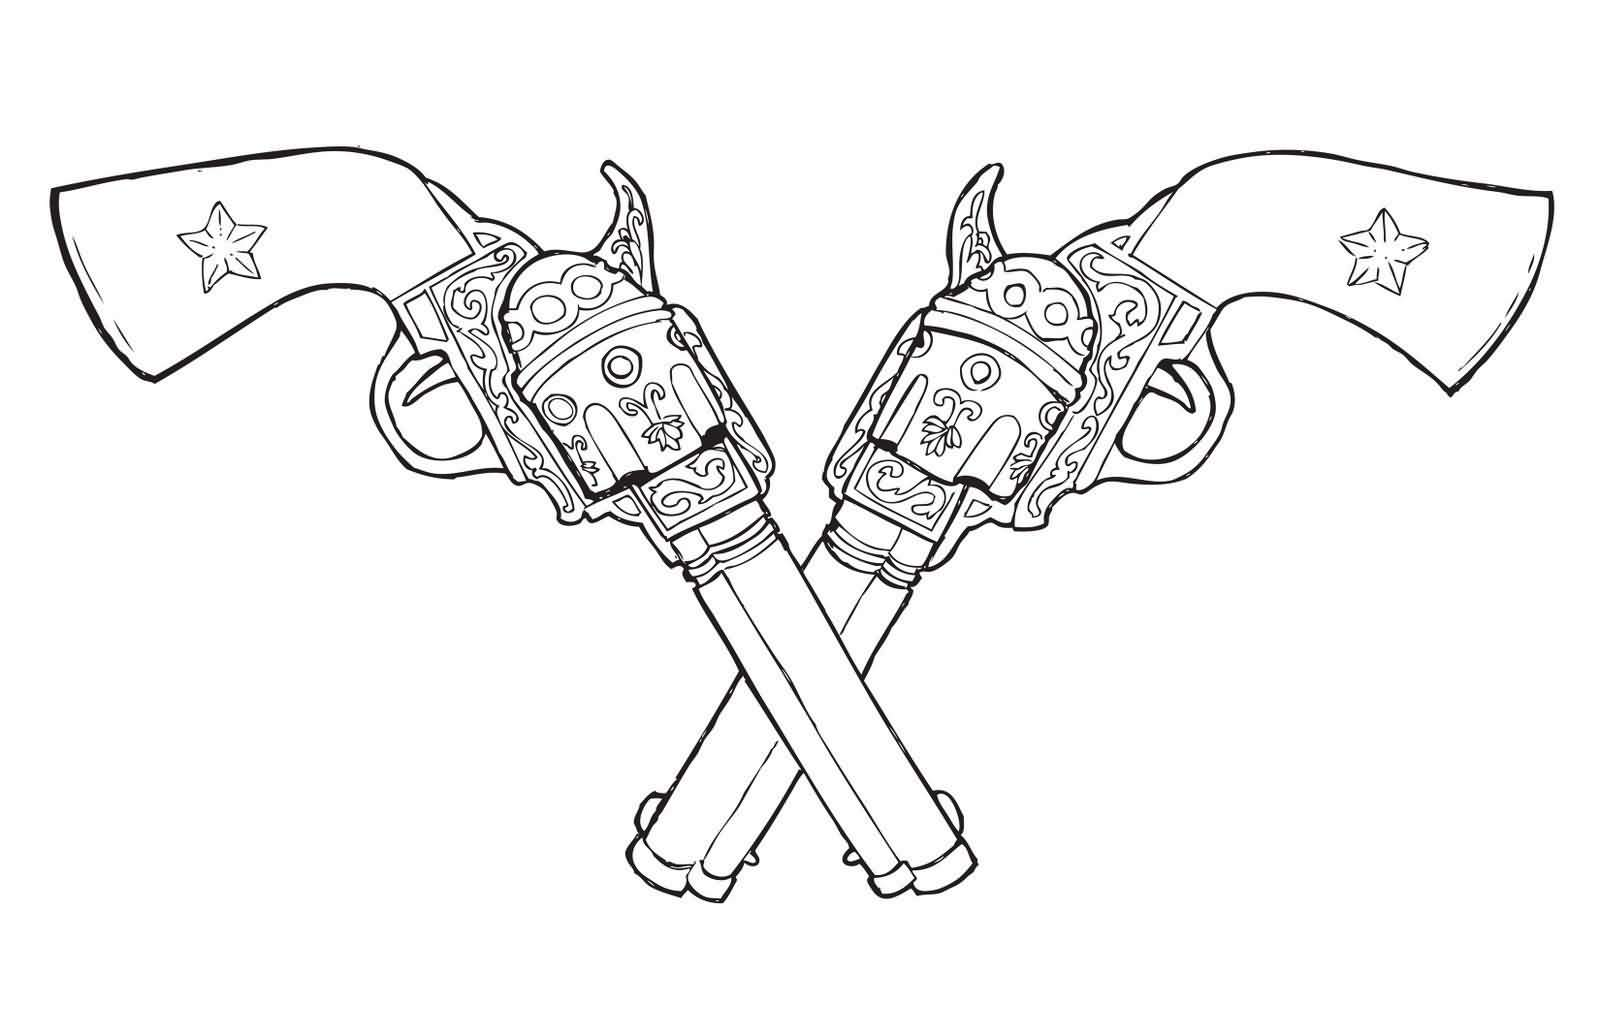 Outline Double Pistol Tattoos Sample